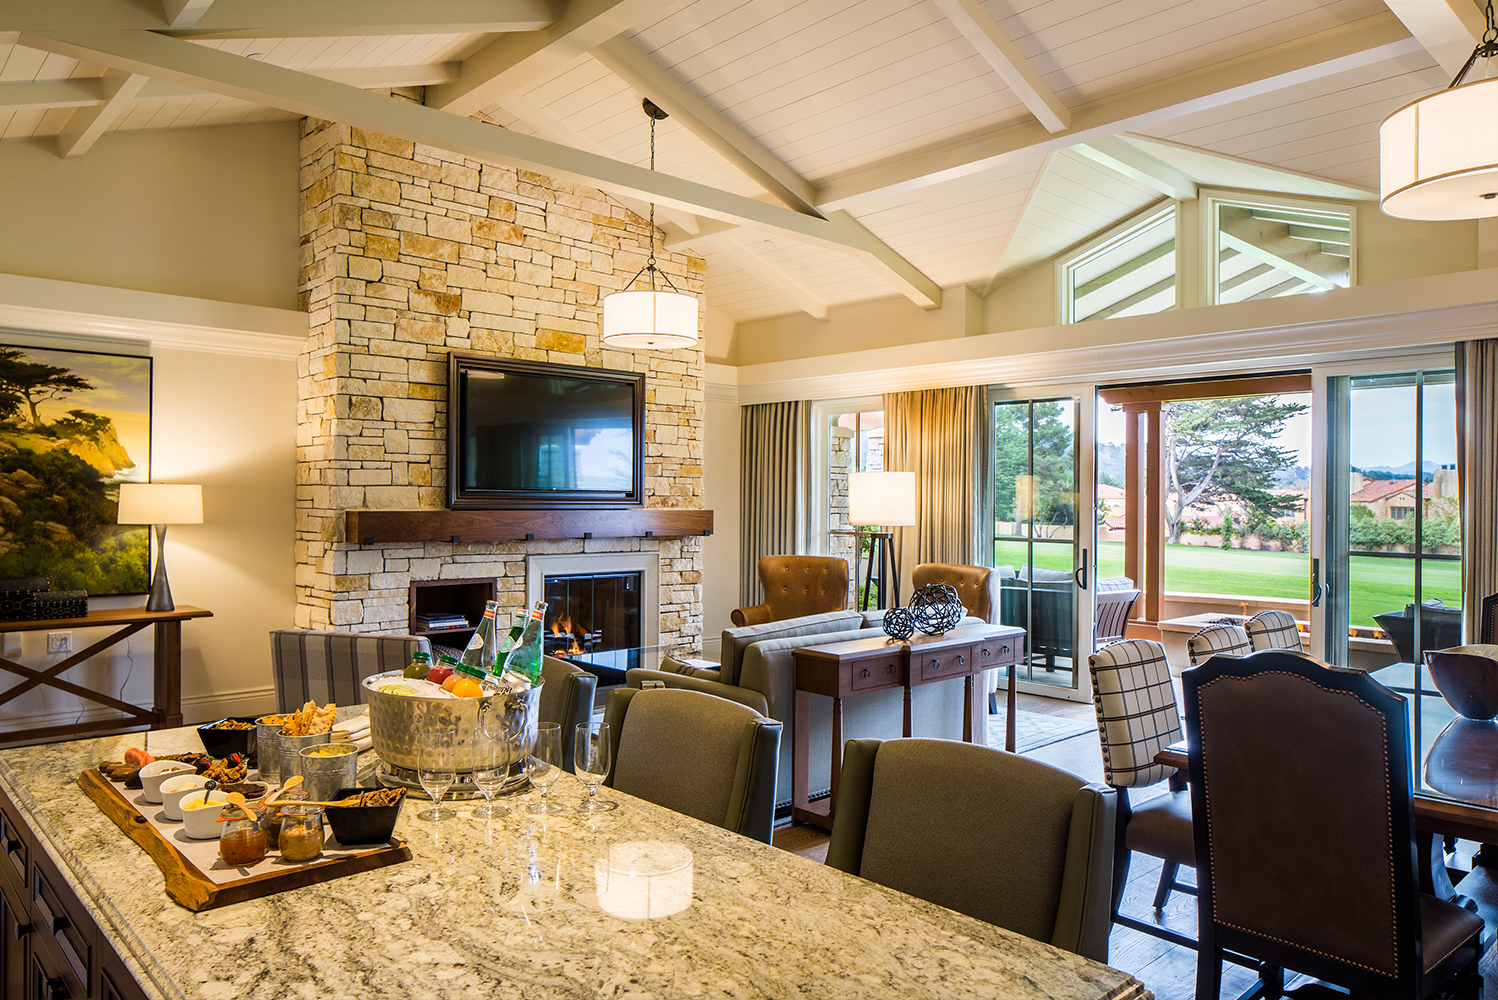 Fairway One has three two-story buildings with 10 guestrooms each, two four-bedroom golf cottages, and the Fairway One Meeting Facility.